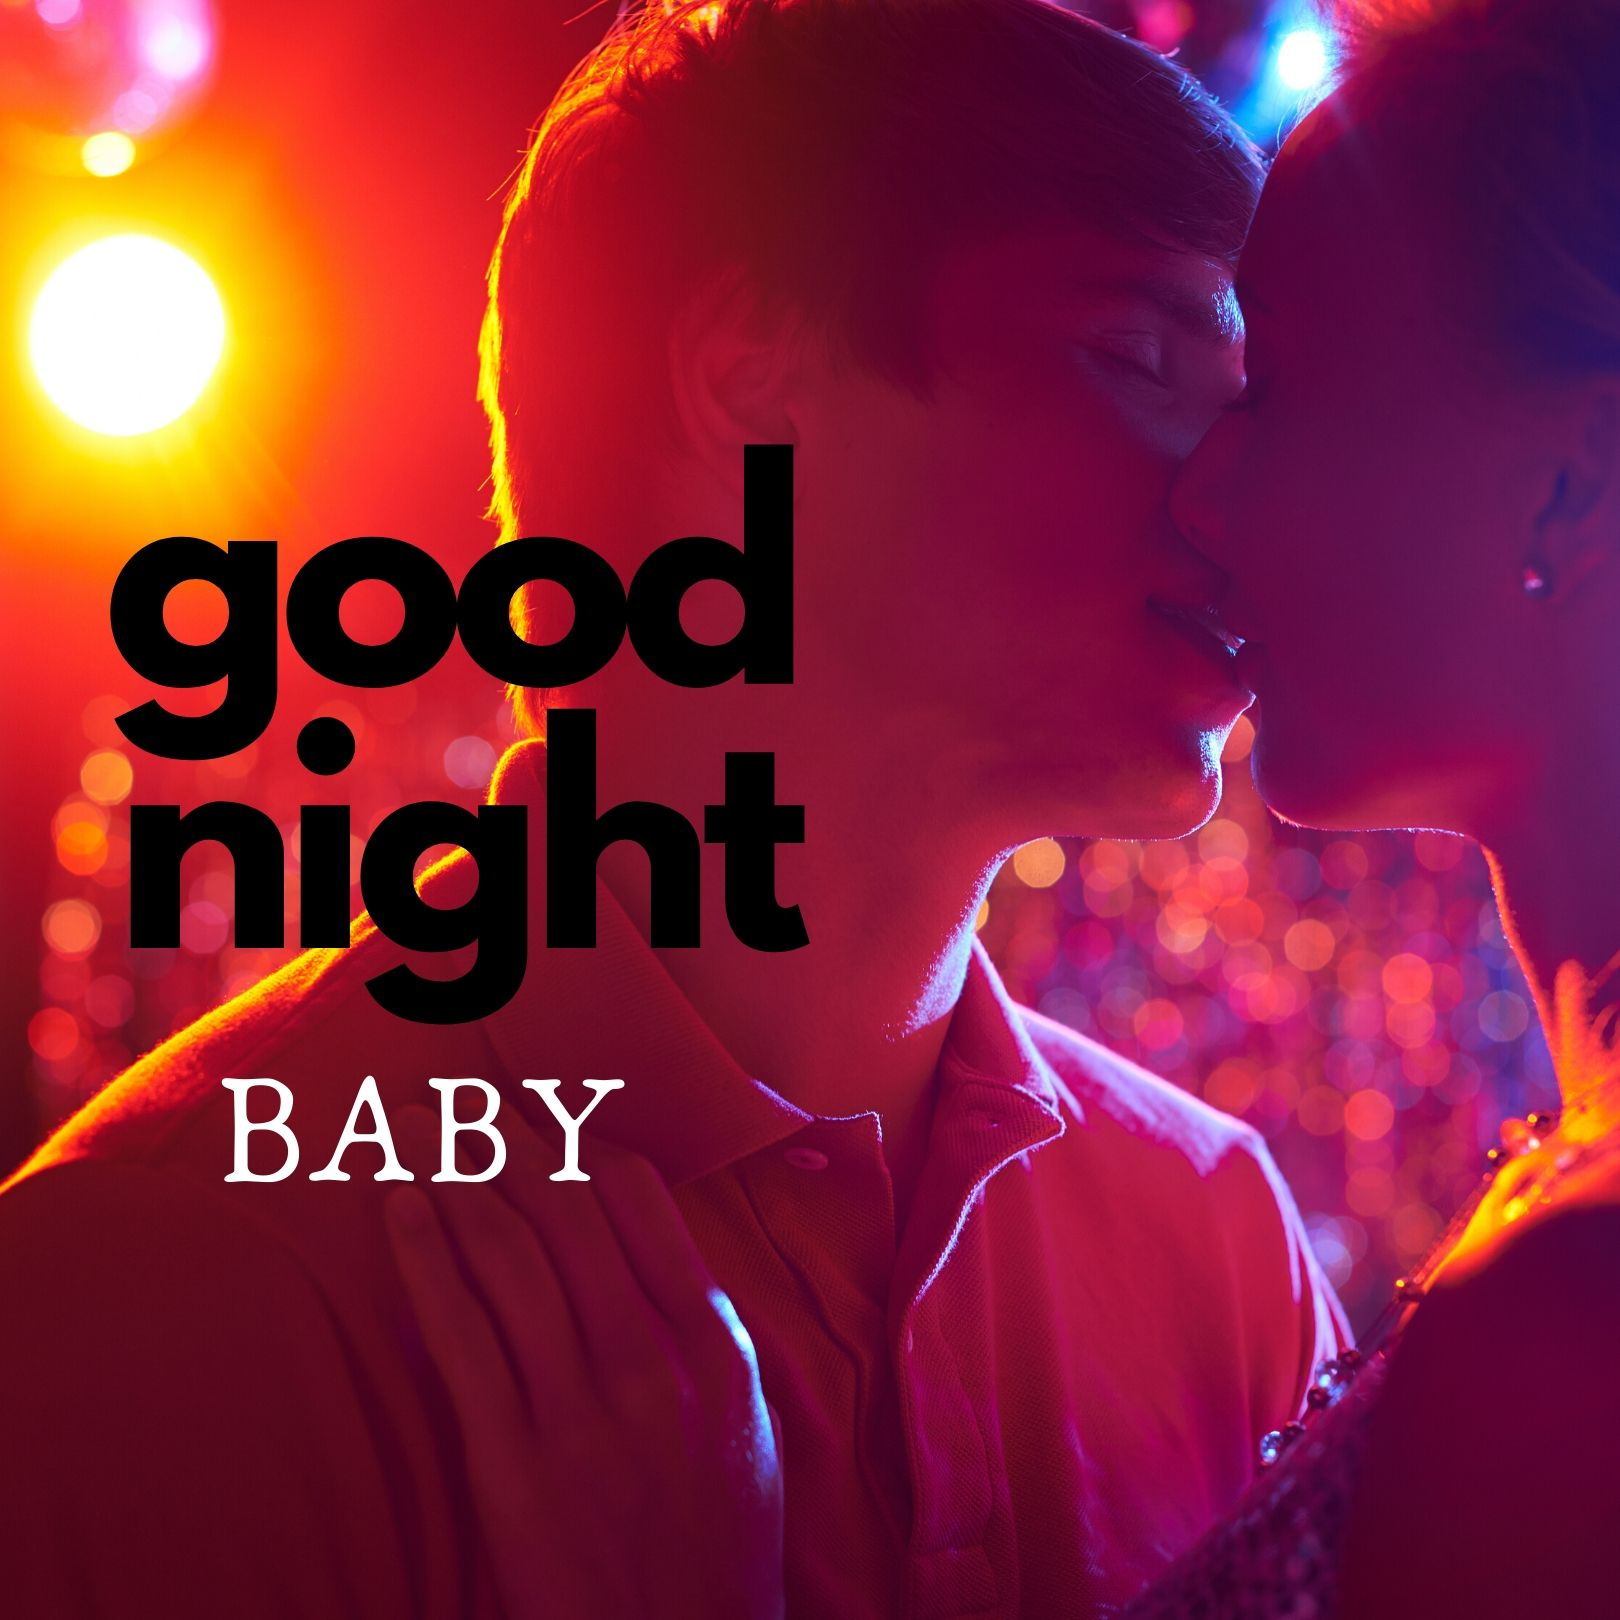 Good Night baby kiss picture full HD free download.